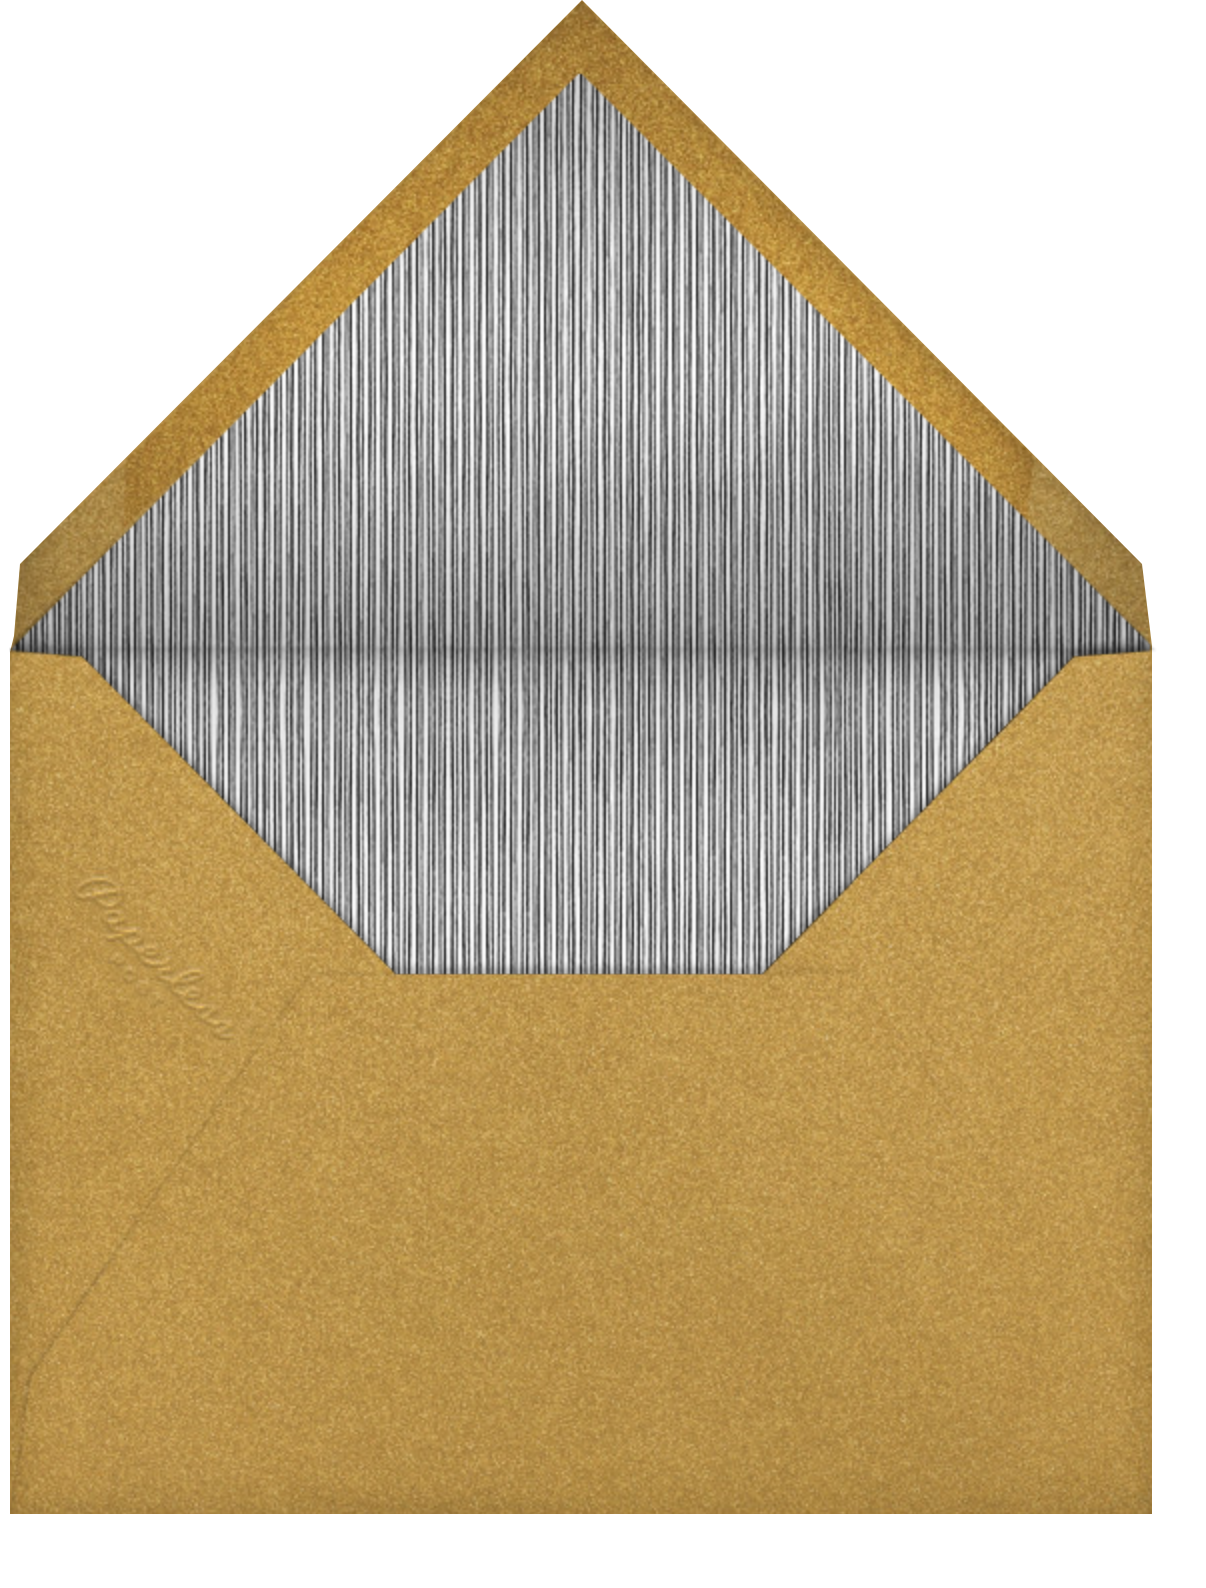 Naive Wave - Gold - Paperless Post - Cocktail party - envelope back